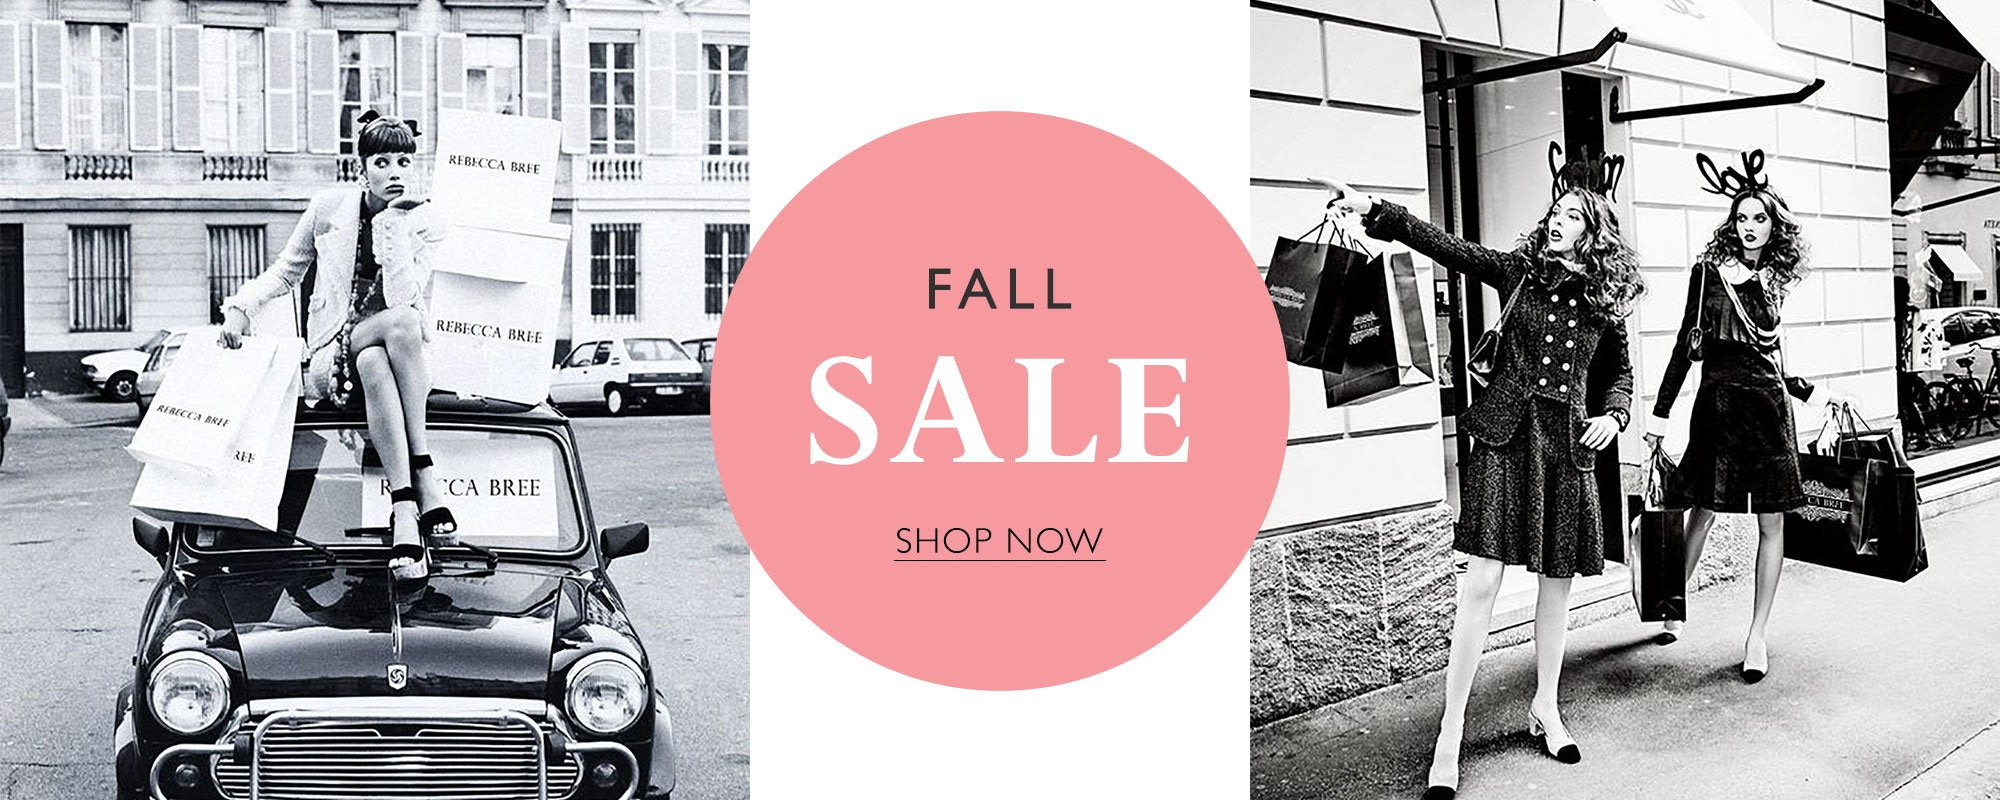 Shop our new FALL arrivals at Rebecca Bree